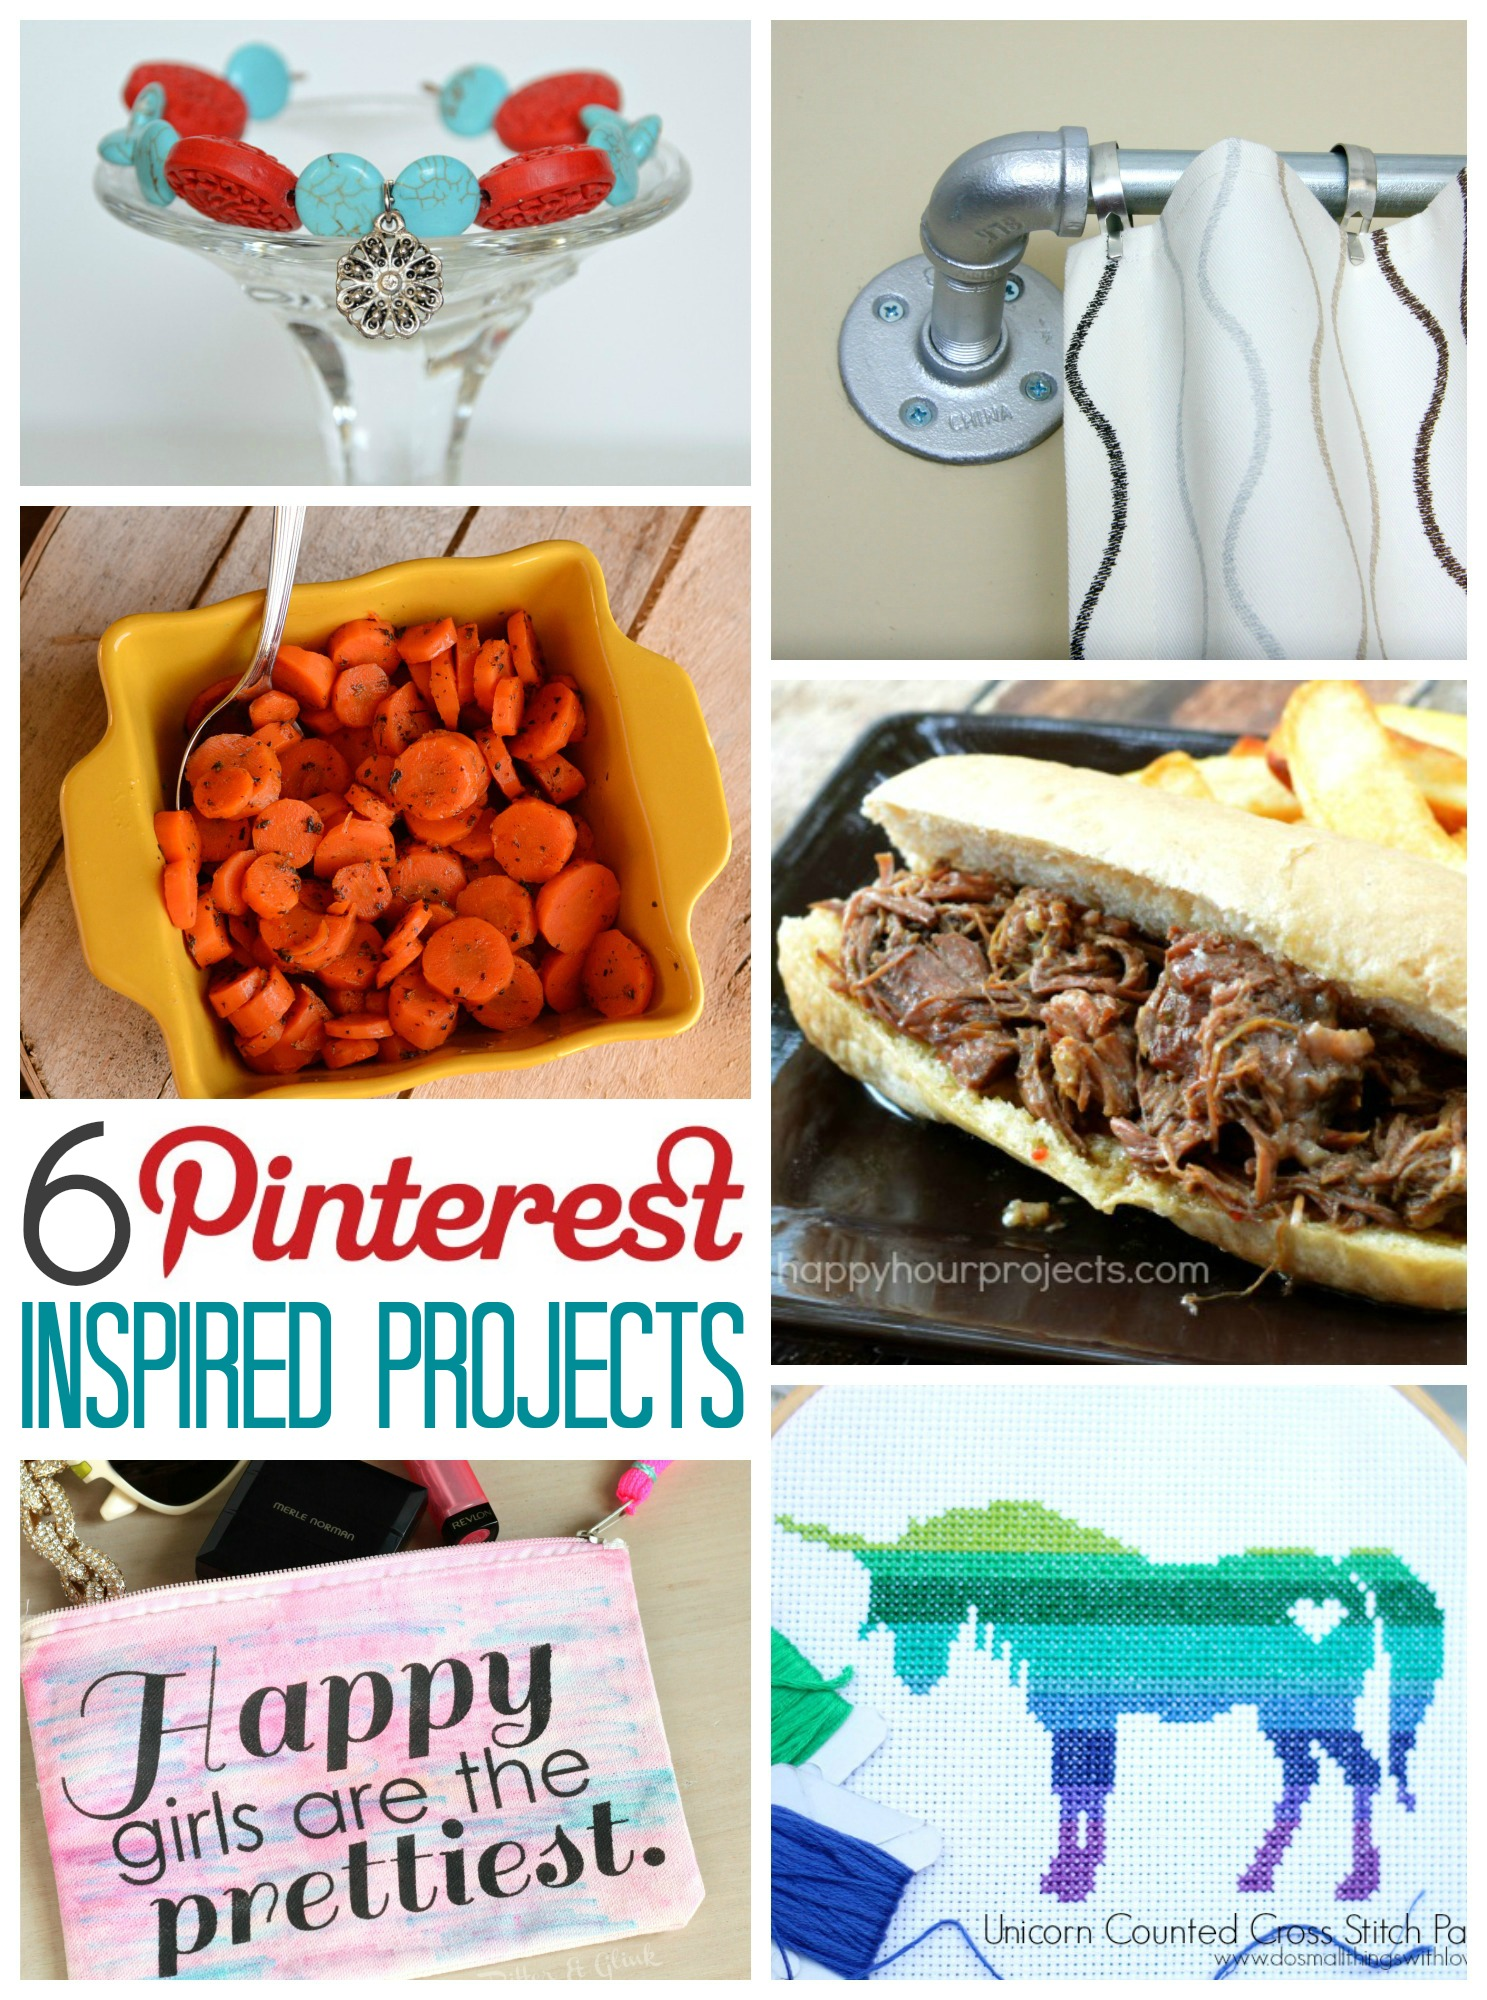 6 Pinterest Inspired Projects